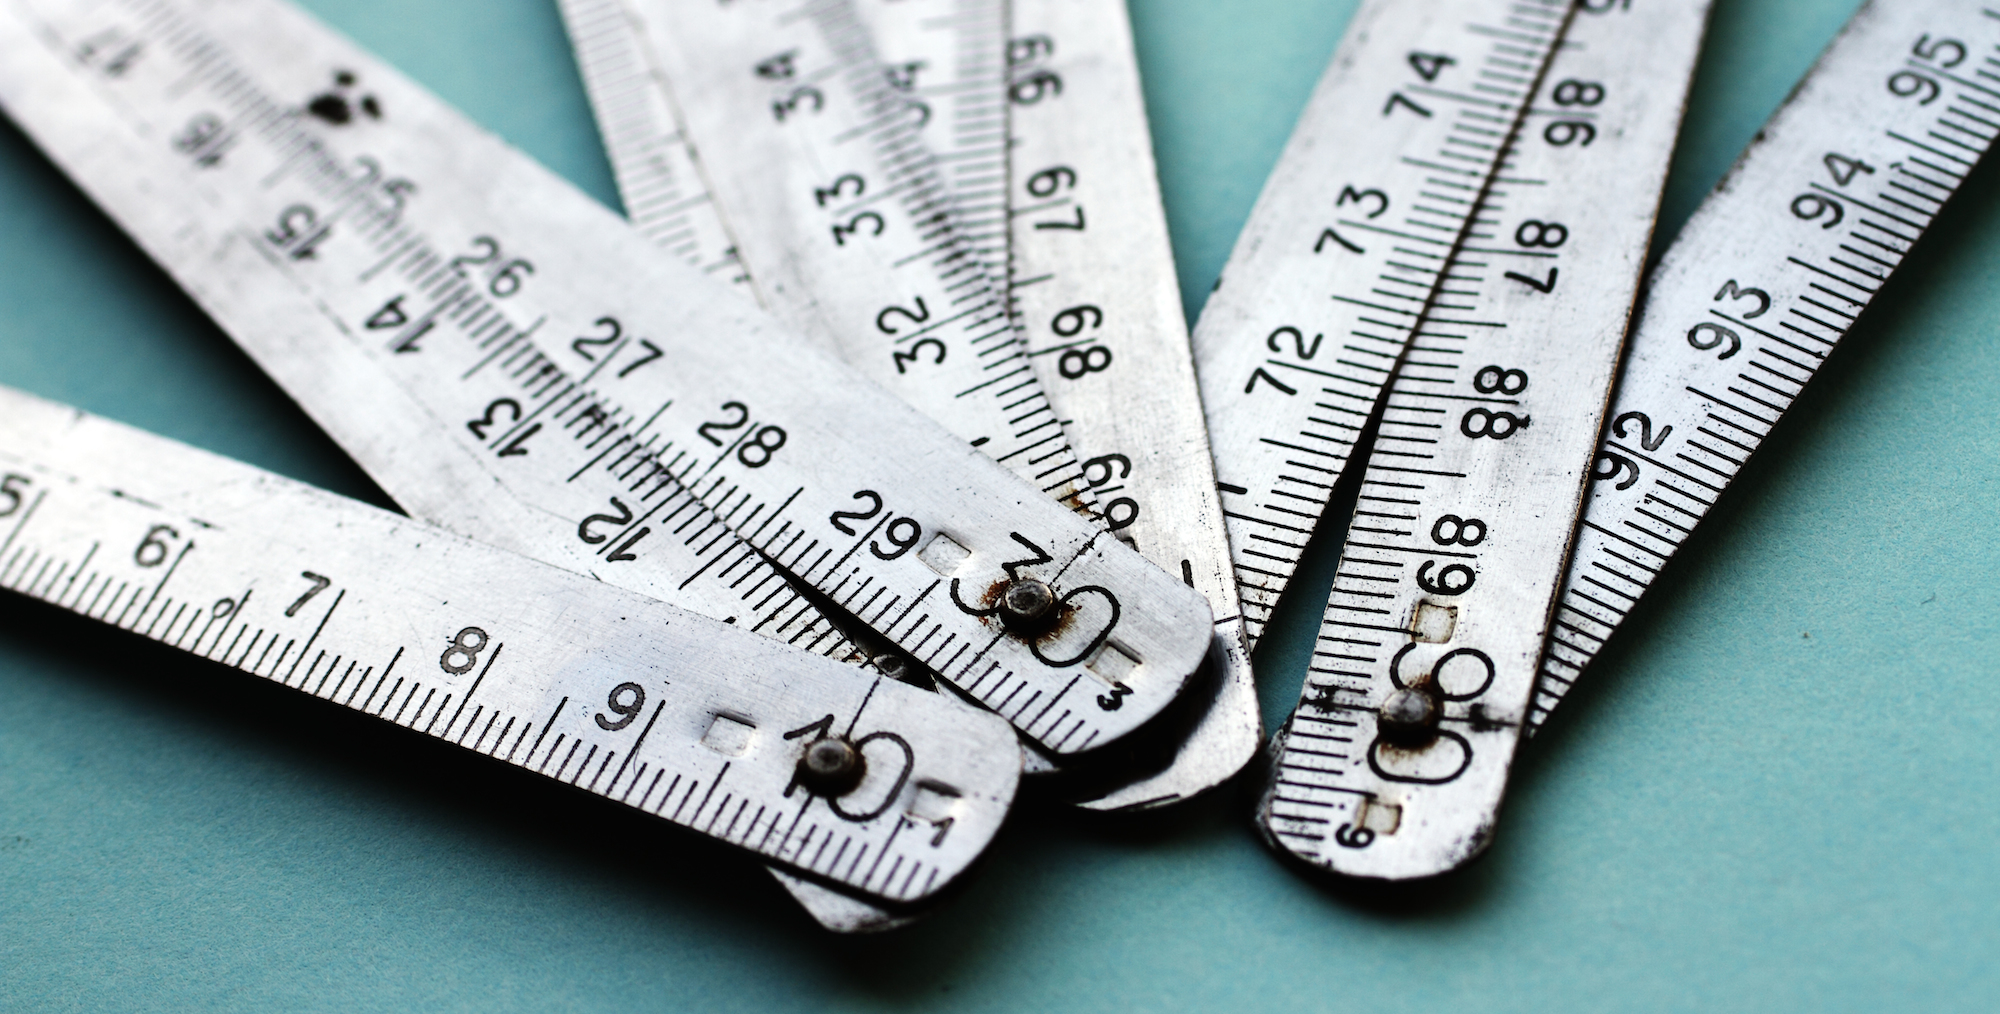 Every Social Media Measurement Metric You Should Know